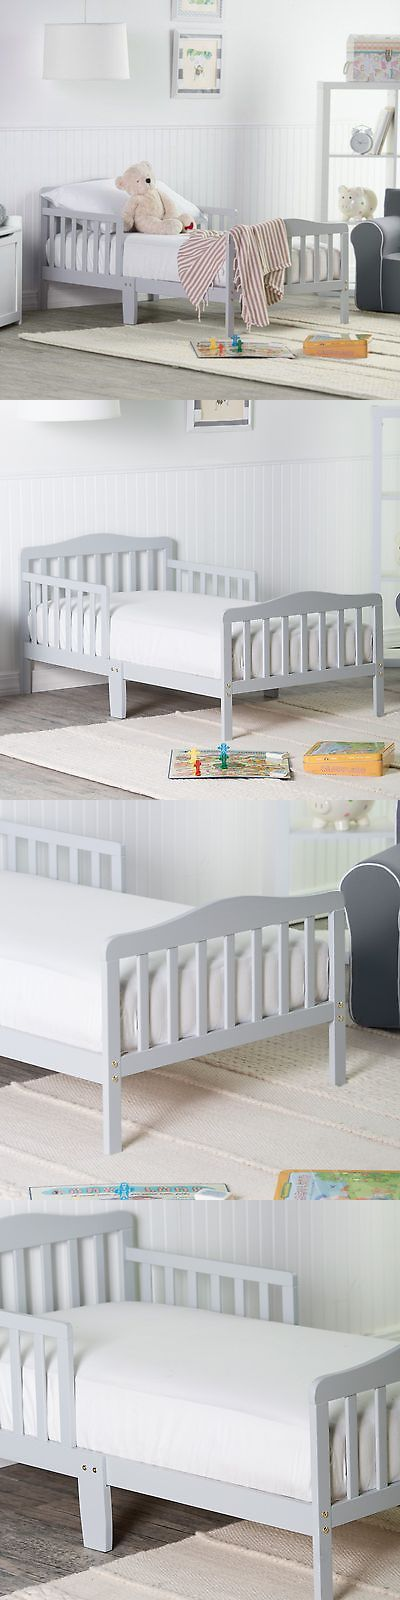 Kids Furniture: Orbelle Contemporary Solid Wood Toddler Bed -, Grey BUY IT NOW ONLY: $58.98